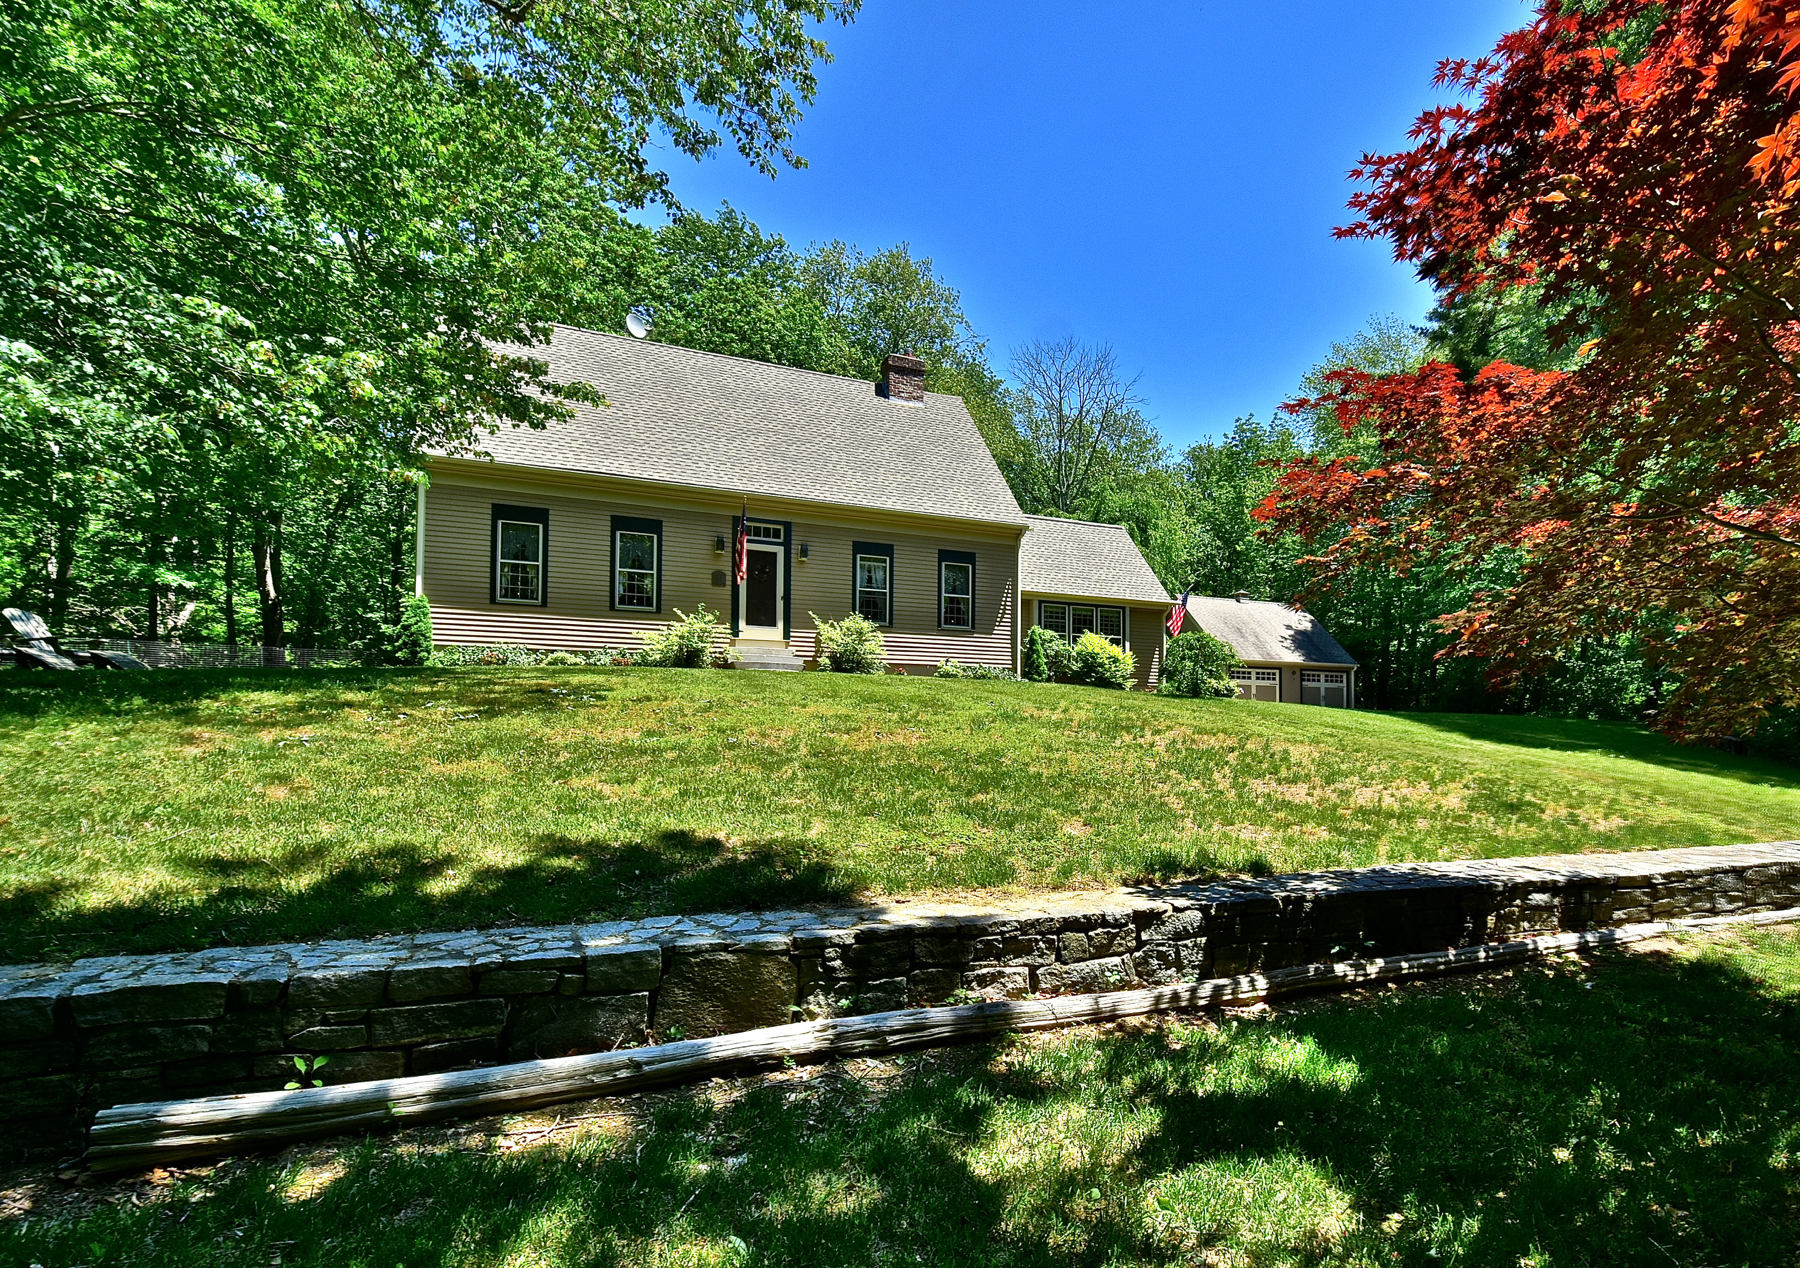 Single Family Home for Sale at Pristine Reproduction Cape Cod 8 Short Hills Rd Old Lyme, Connecticut 06371 United States